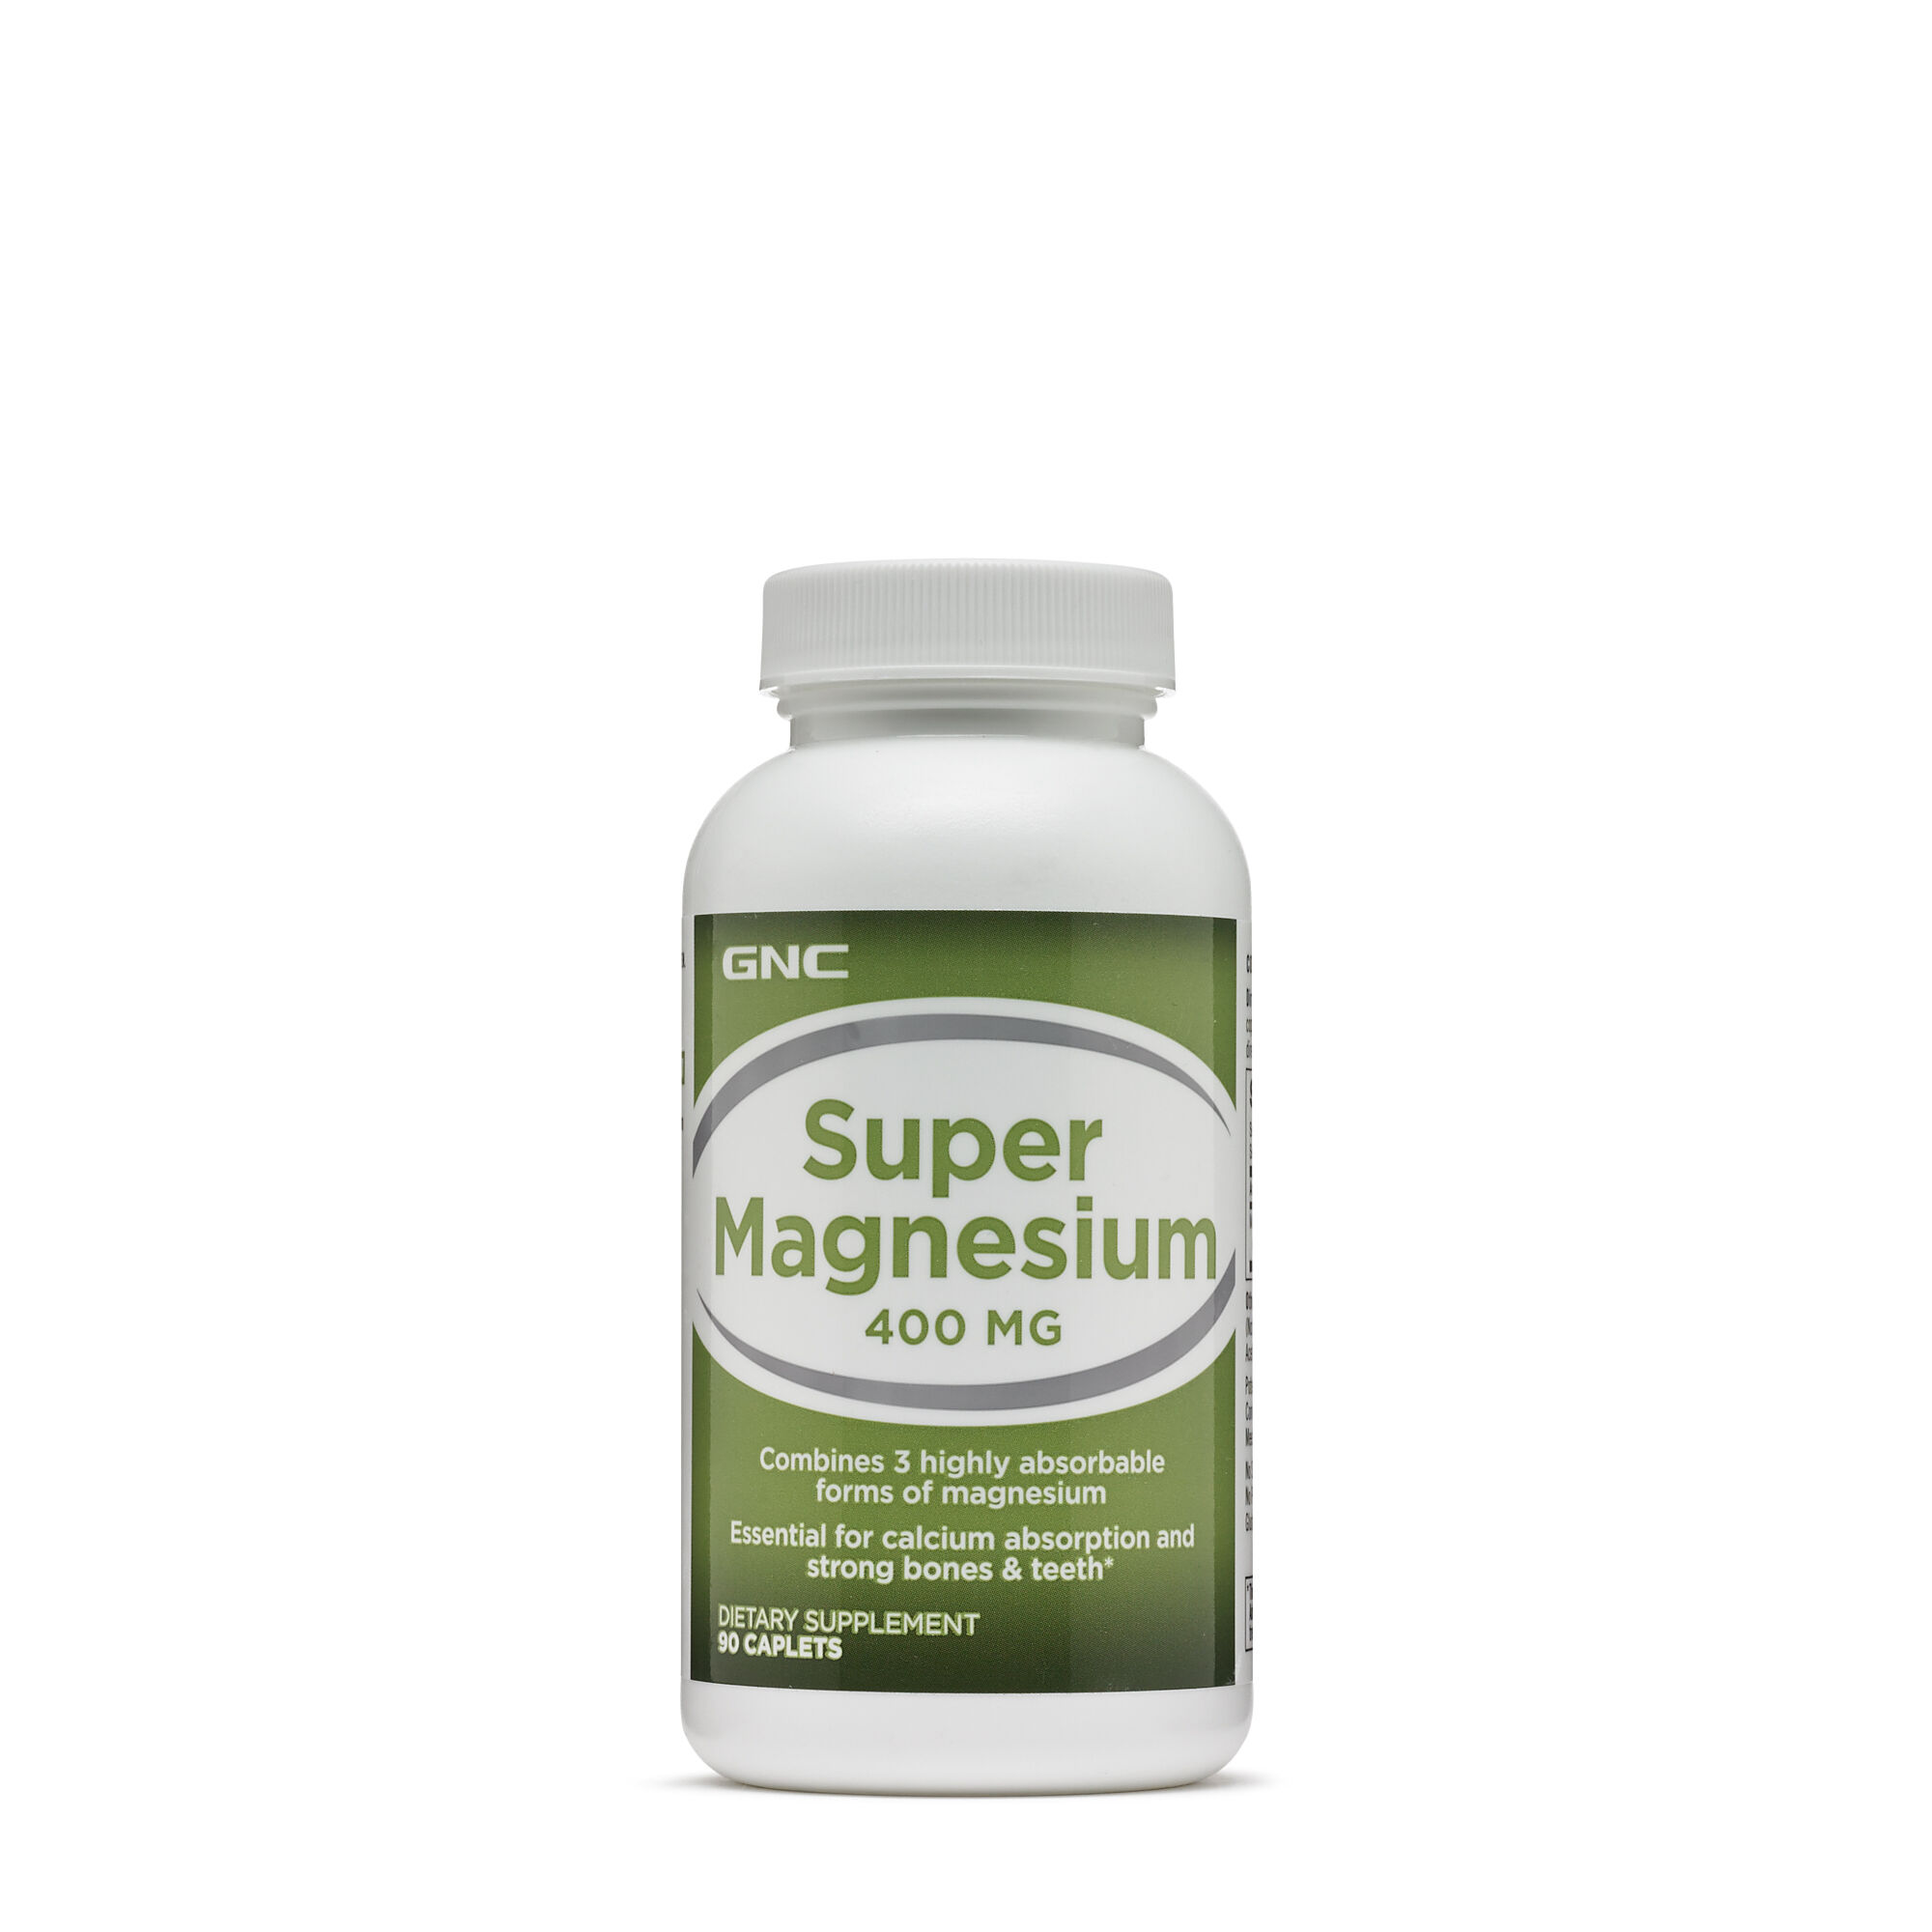 GNC Super Magnesium 400 MG